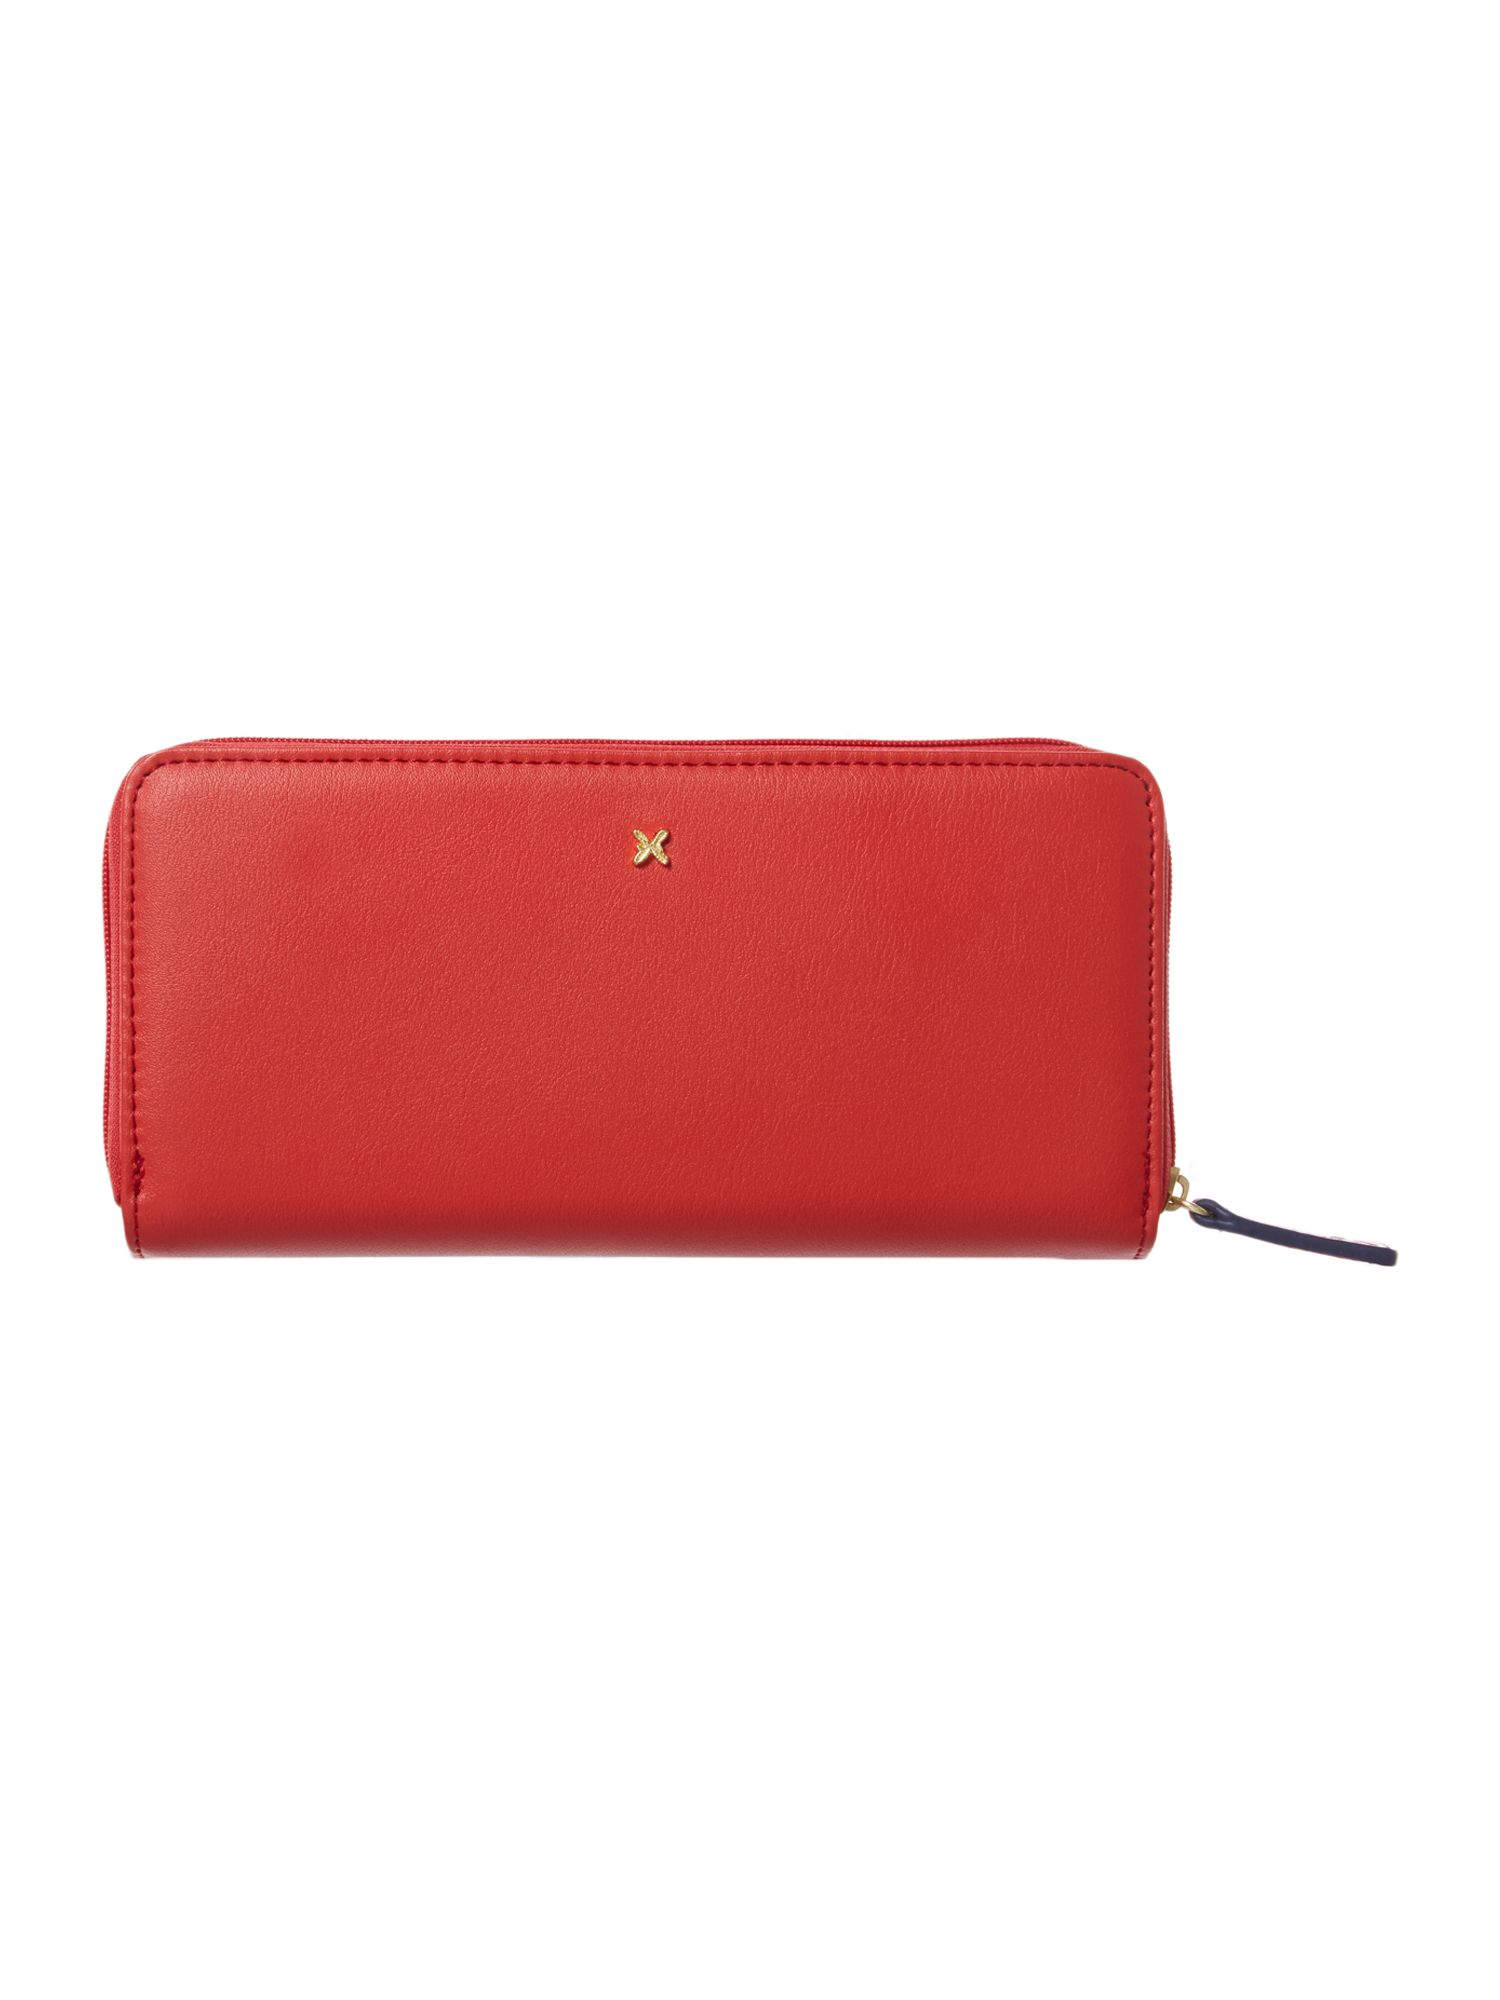 Vera large red zip around purse